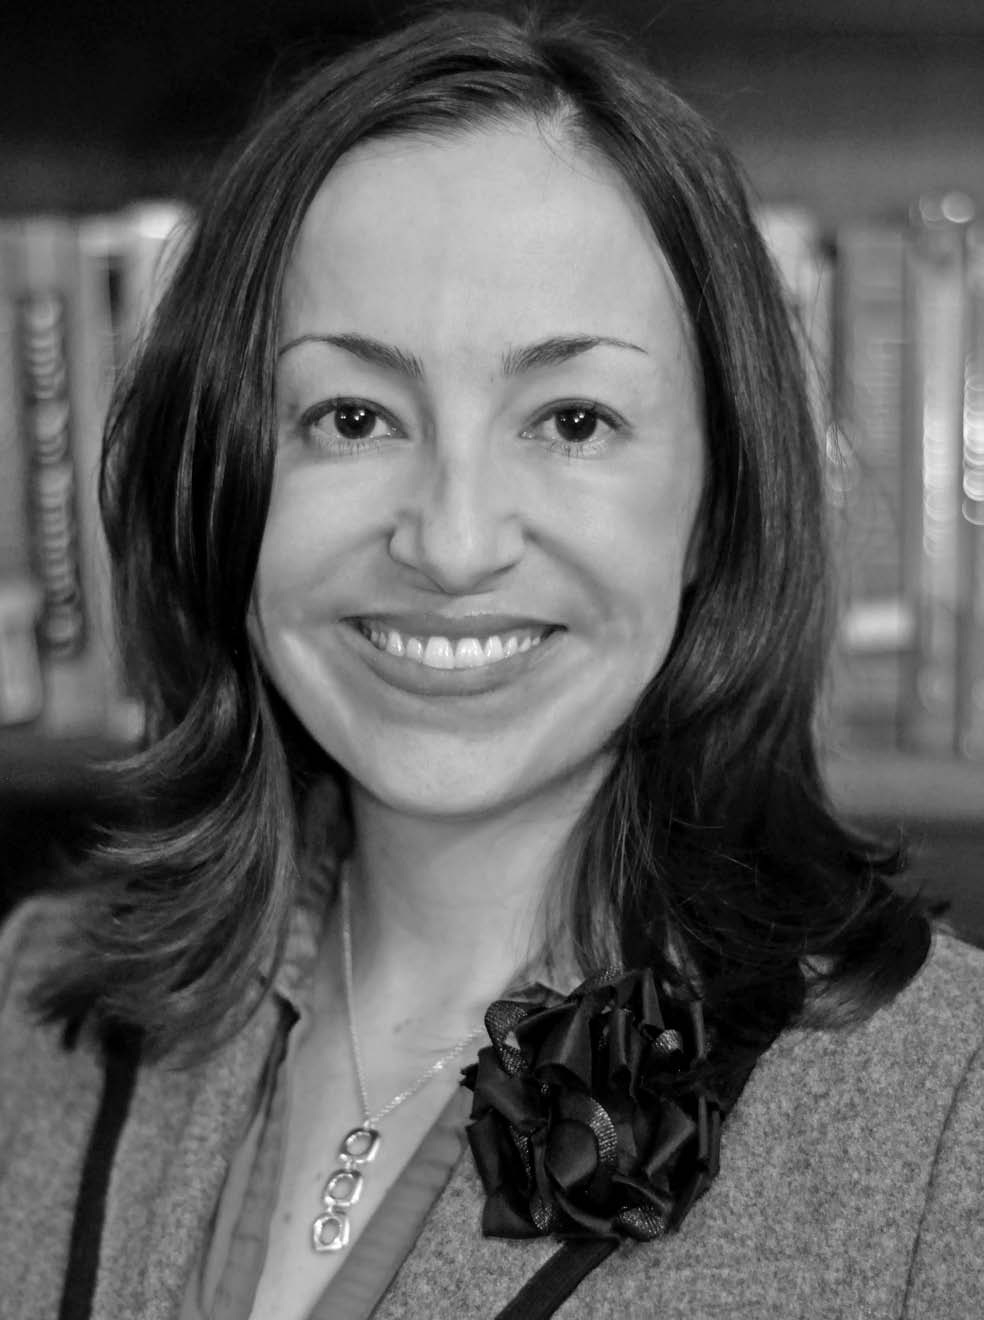 Dr. Roberta Espinoza, Assistant Professor of Sociology, California State University-Fullerton